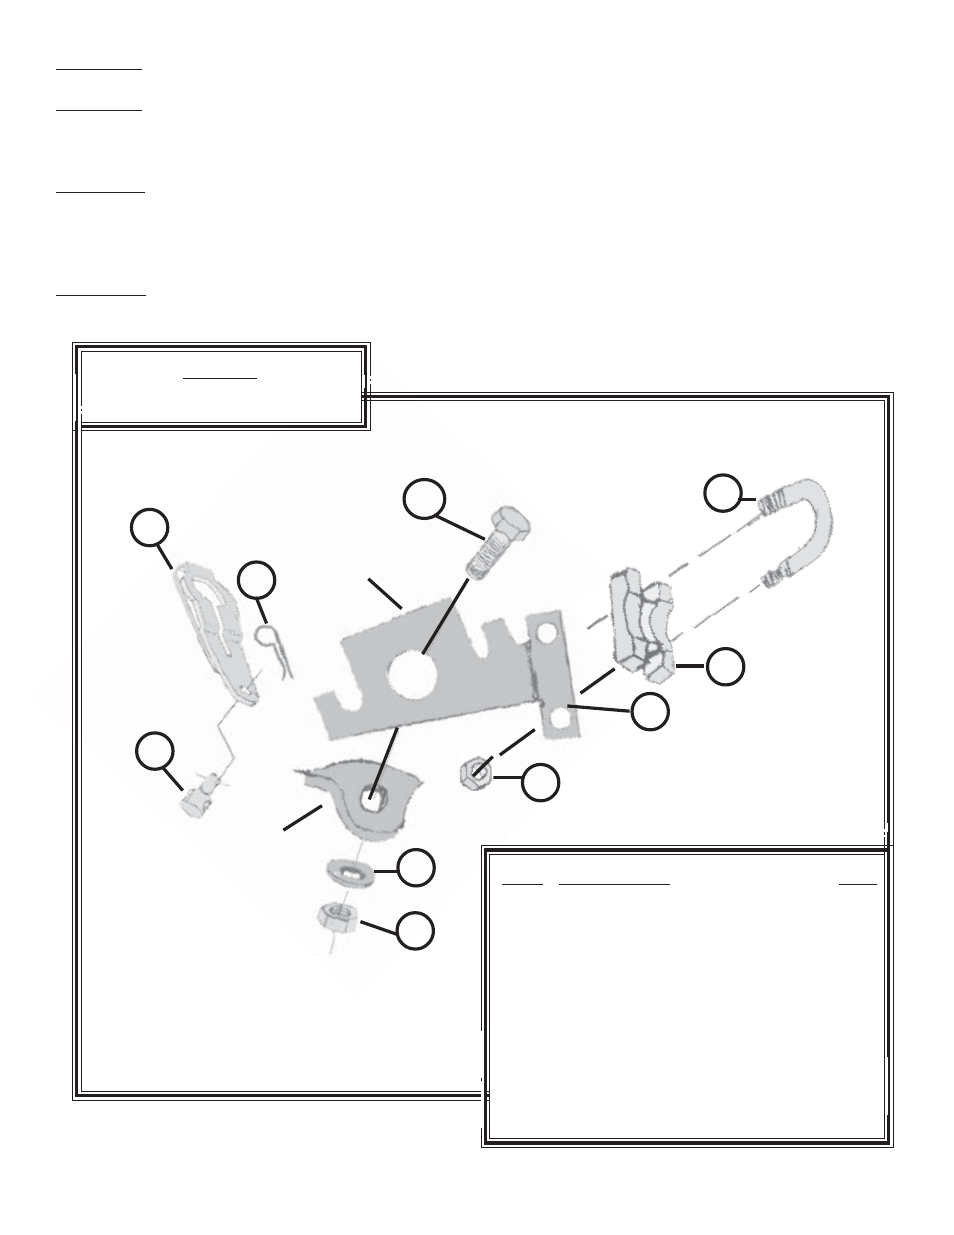 Turbo Action 70001b Cheetah Scs Shifter User Manual Page 3 6